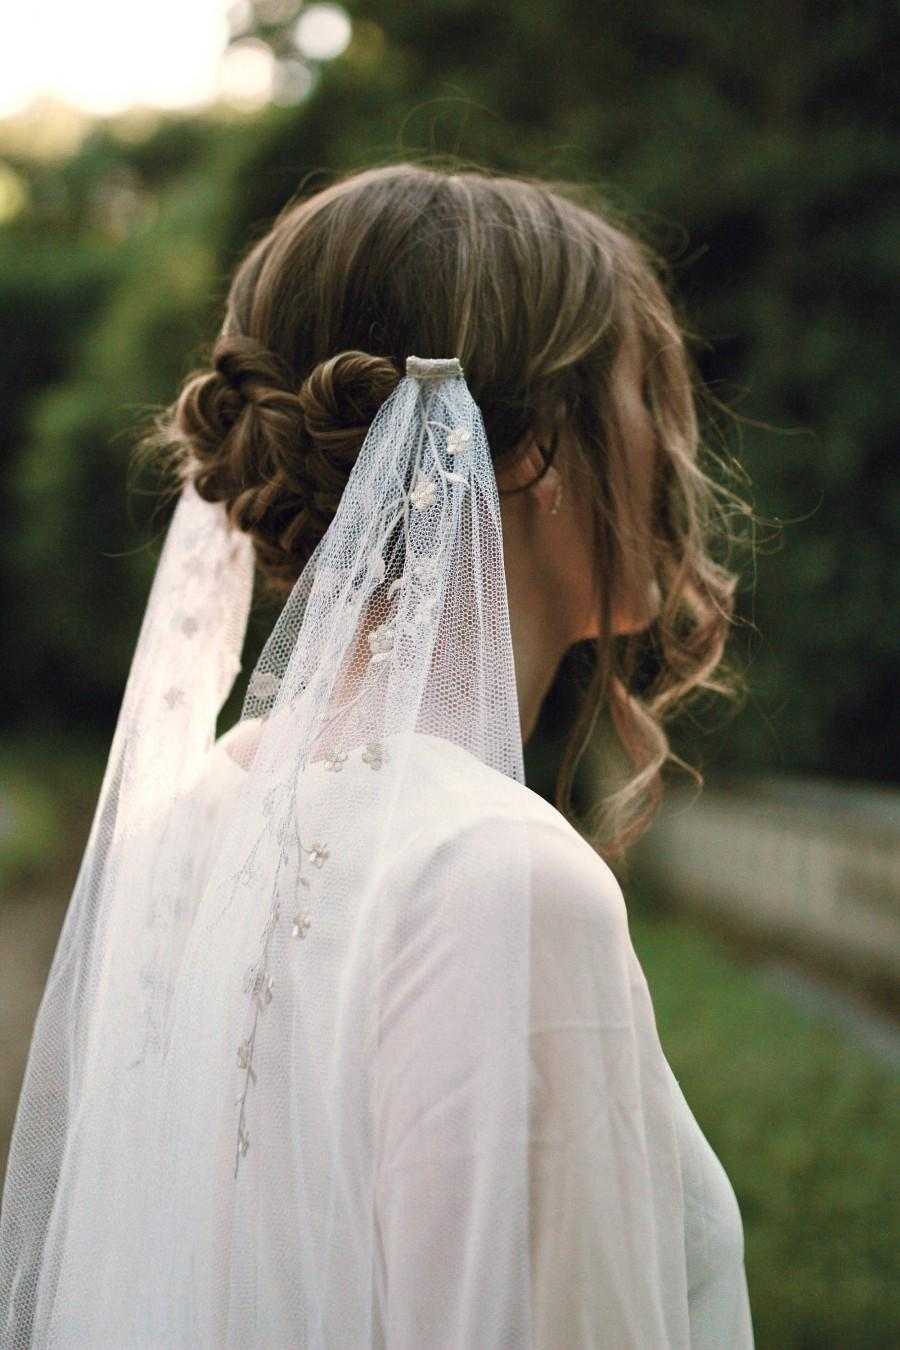 Wedding - Embroidered bridal veil, White wedding veil, Cathedral length veil, Draping veil, Ethereal headpiece, Silver bridal head piece, floral veil